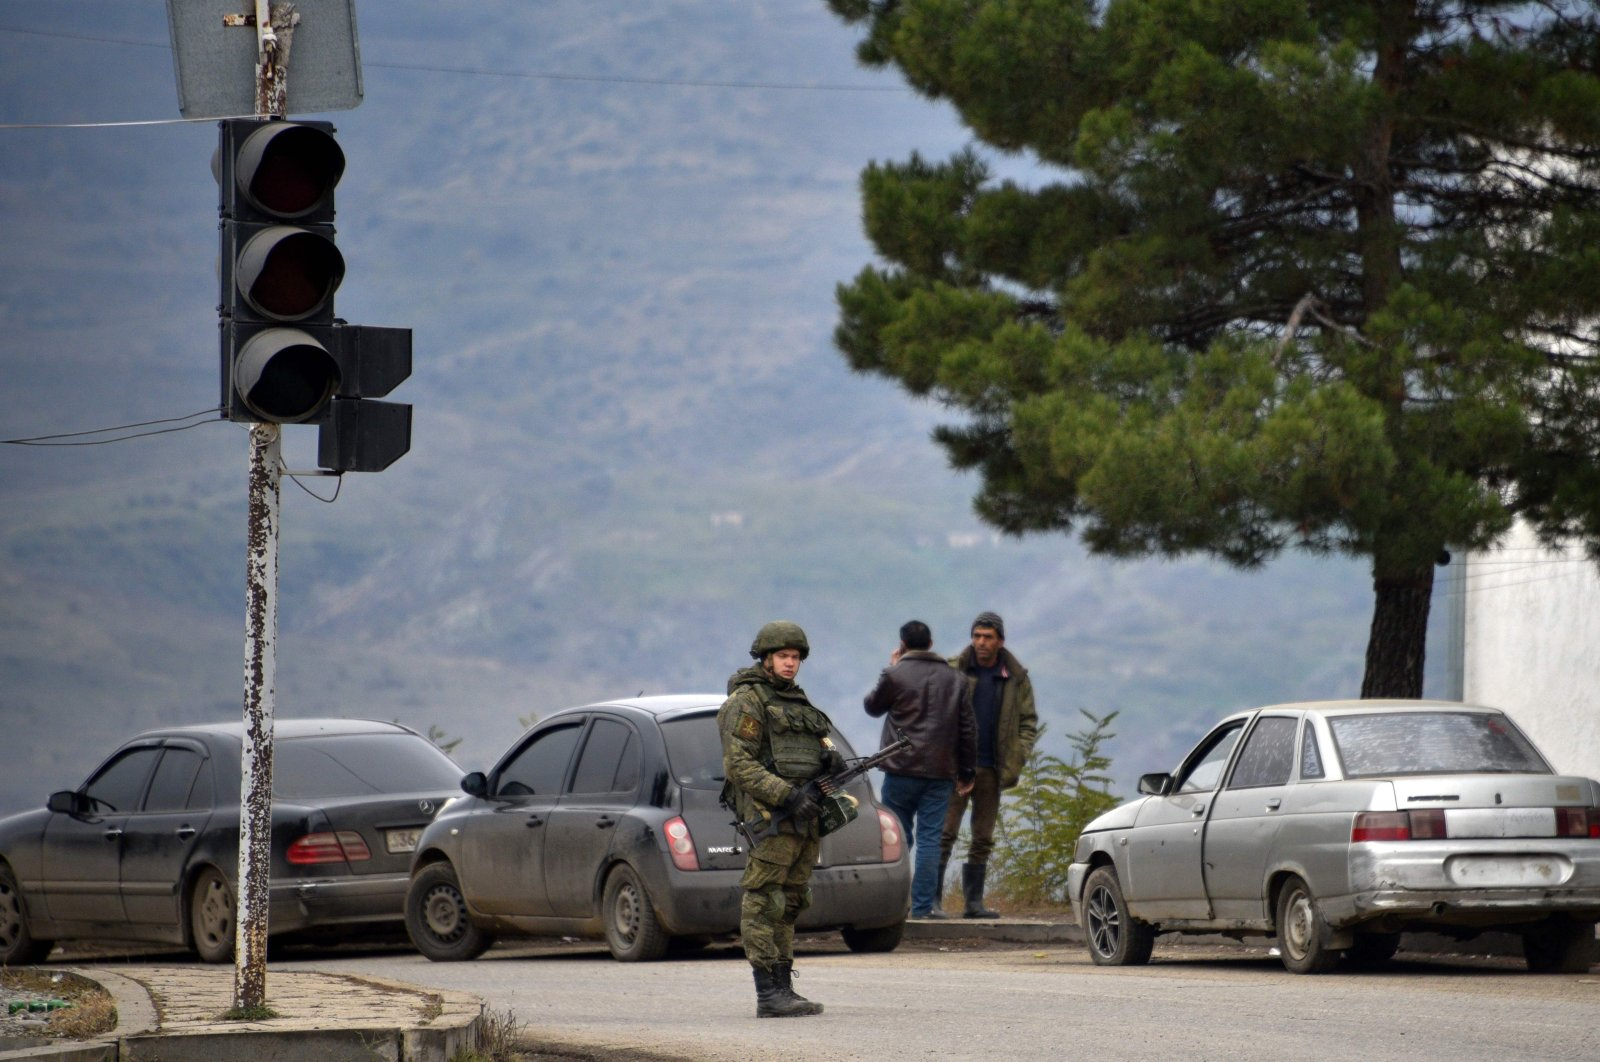 A Russian peacekeeper stands guard on a road in the town of Lachin, Azerbaijan, Dec. 1, 2020. (AFP Photo)